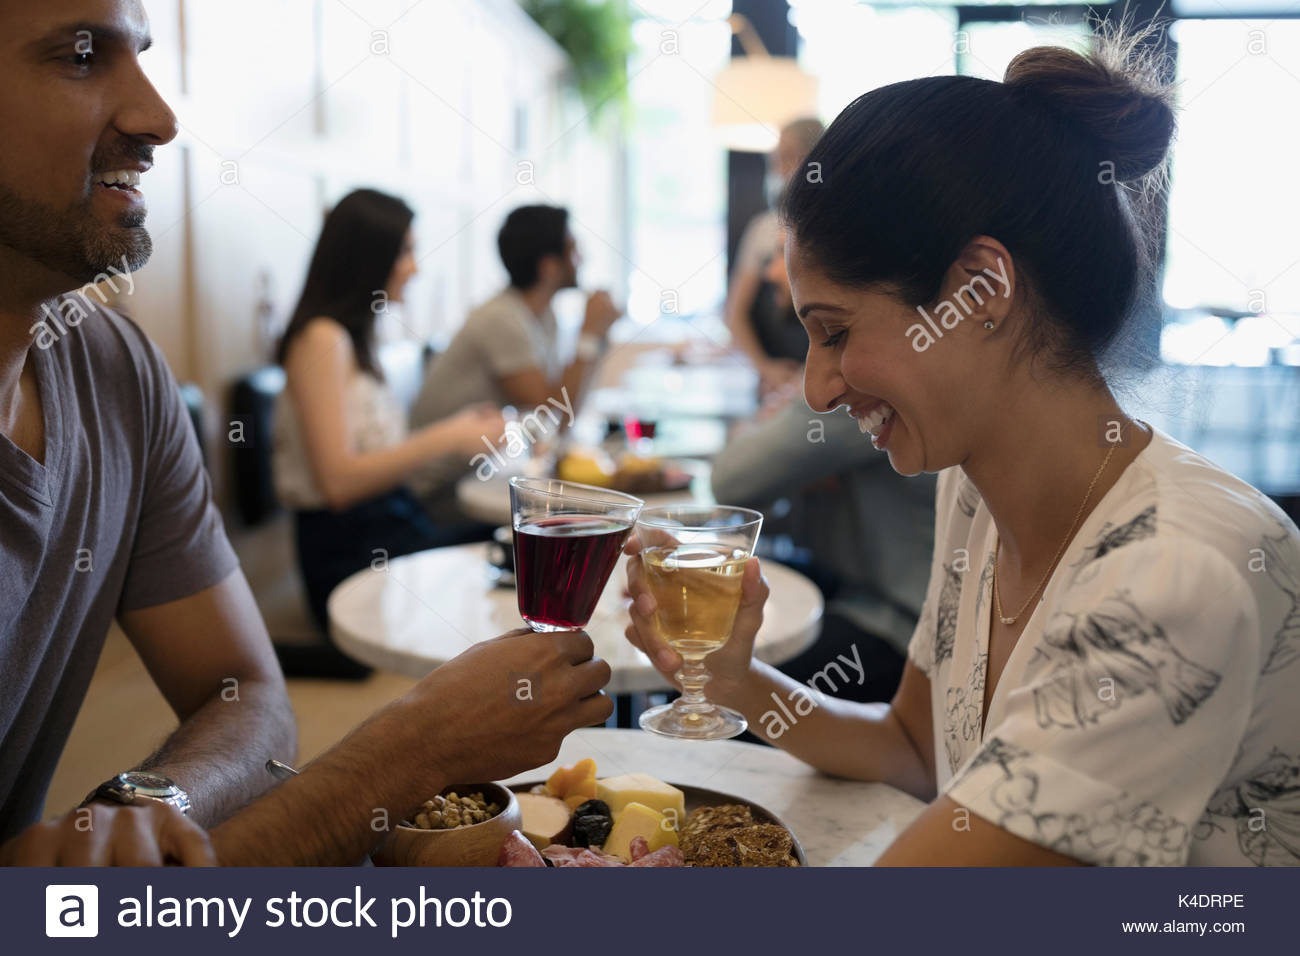 Happy couple toasting wine glasses at cafe table - Stock Image